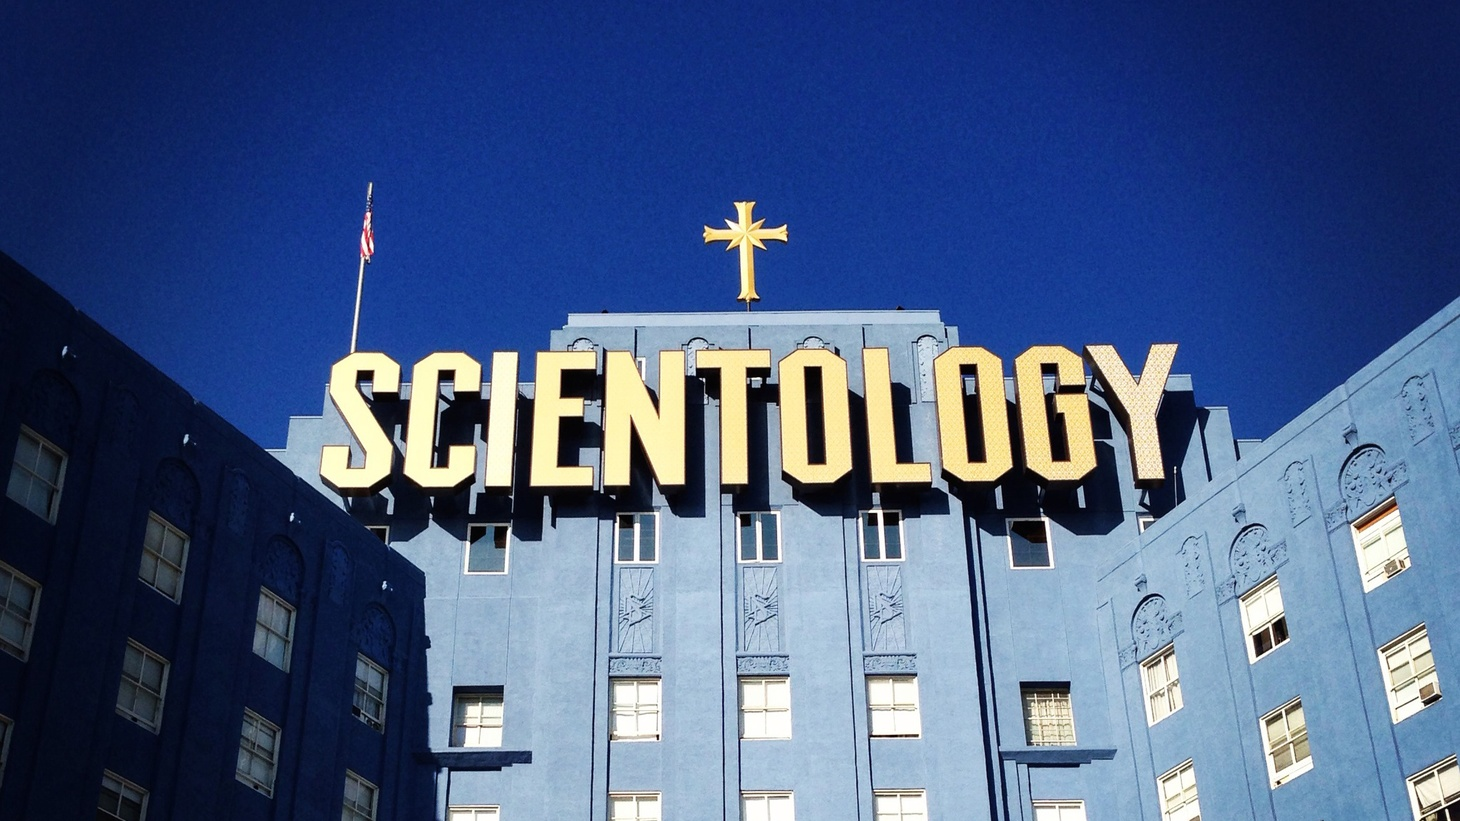 Many members of the Church of Scientology join the religion as adults. But what is it like to grow up as a Scientologist? Two young people share their stories with host Madeleine Brand.